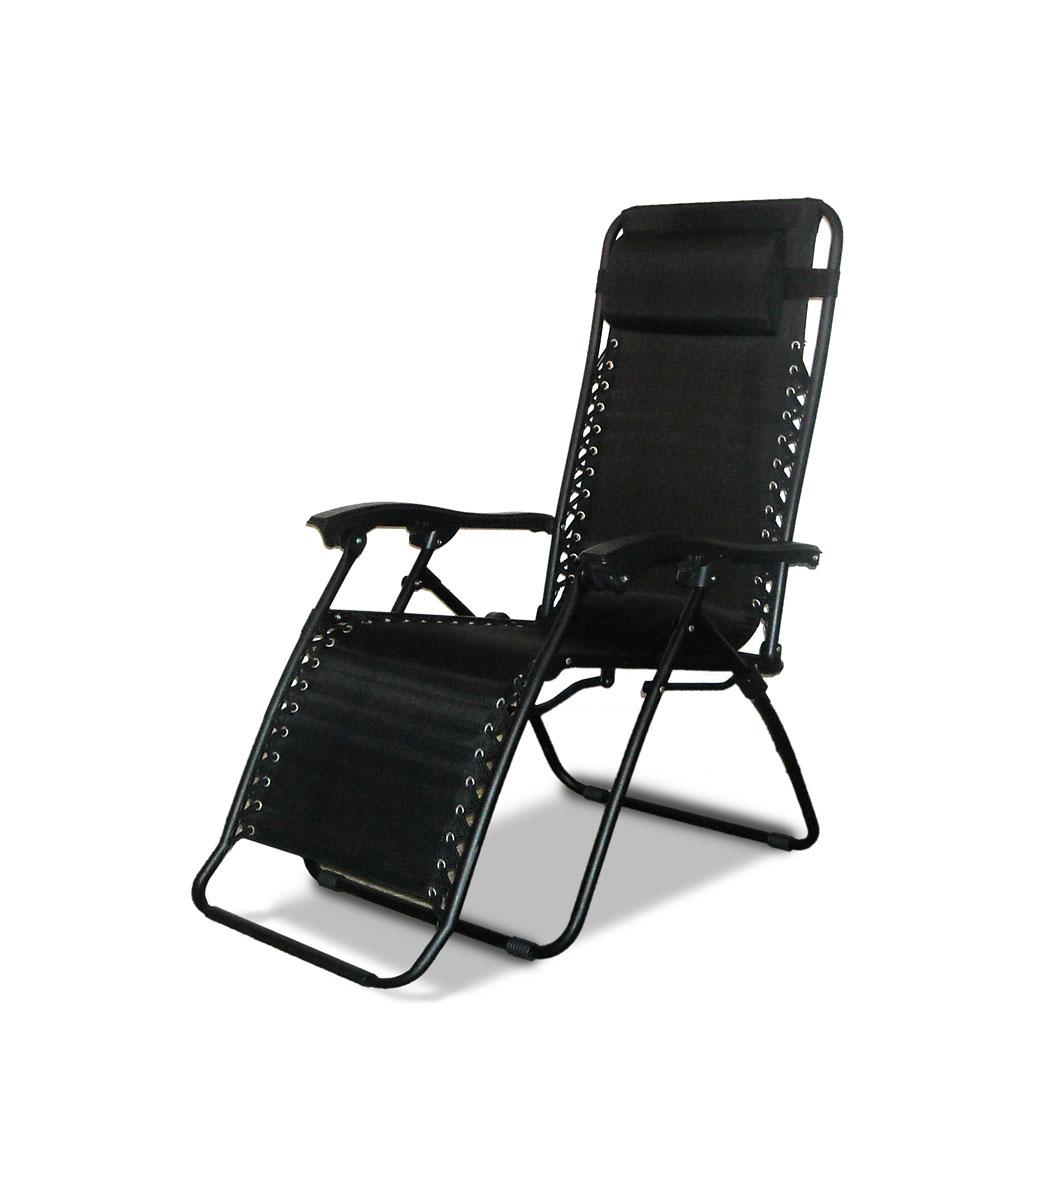 Caravan Canopy Black Zero Gravity Chair 13140408